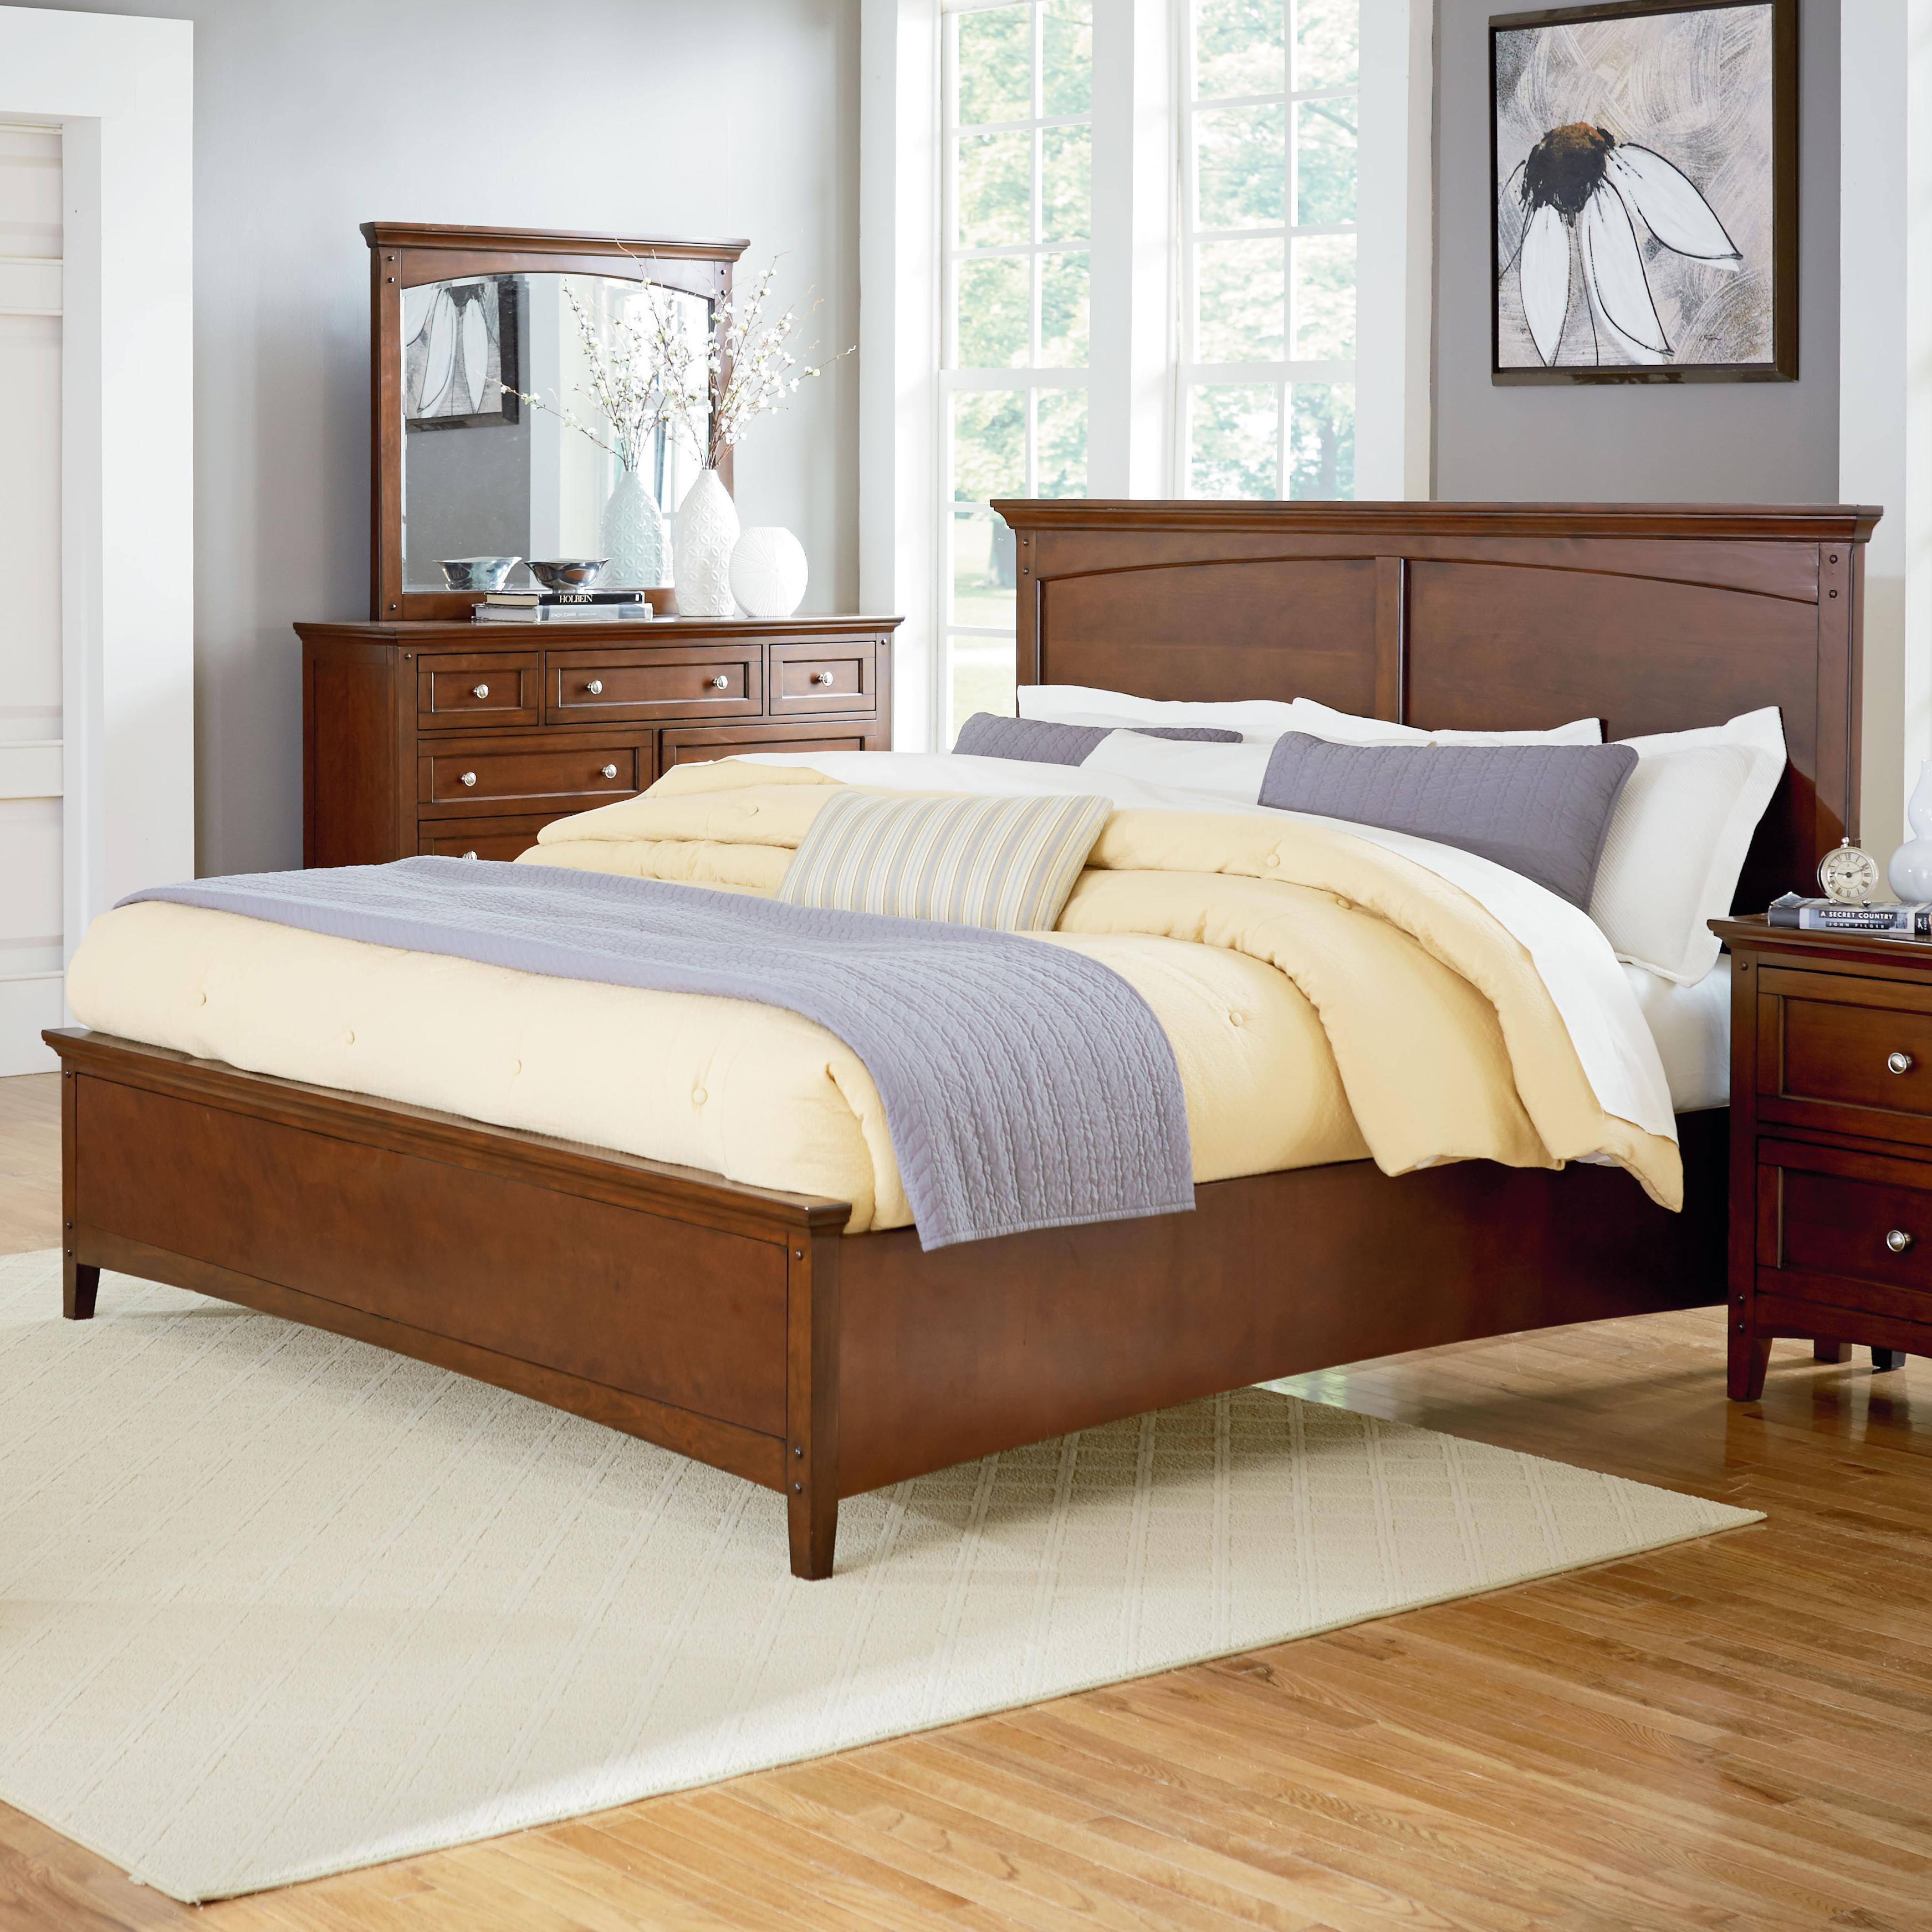 Standard Furniture Cooperstown Queen Panel Bed - Item Number: 93801+04+12